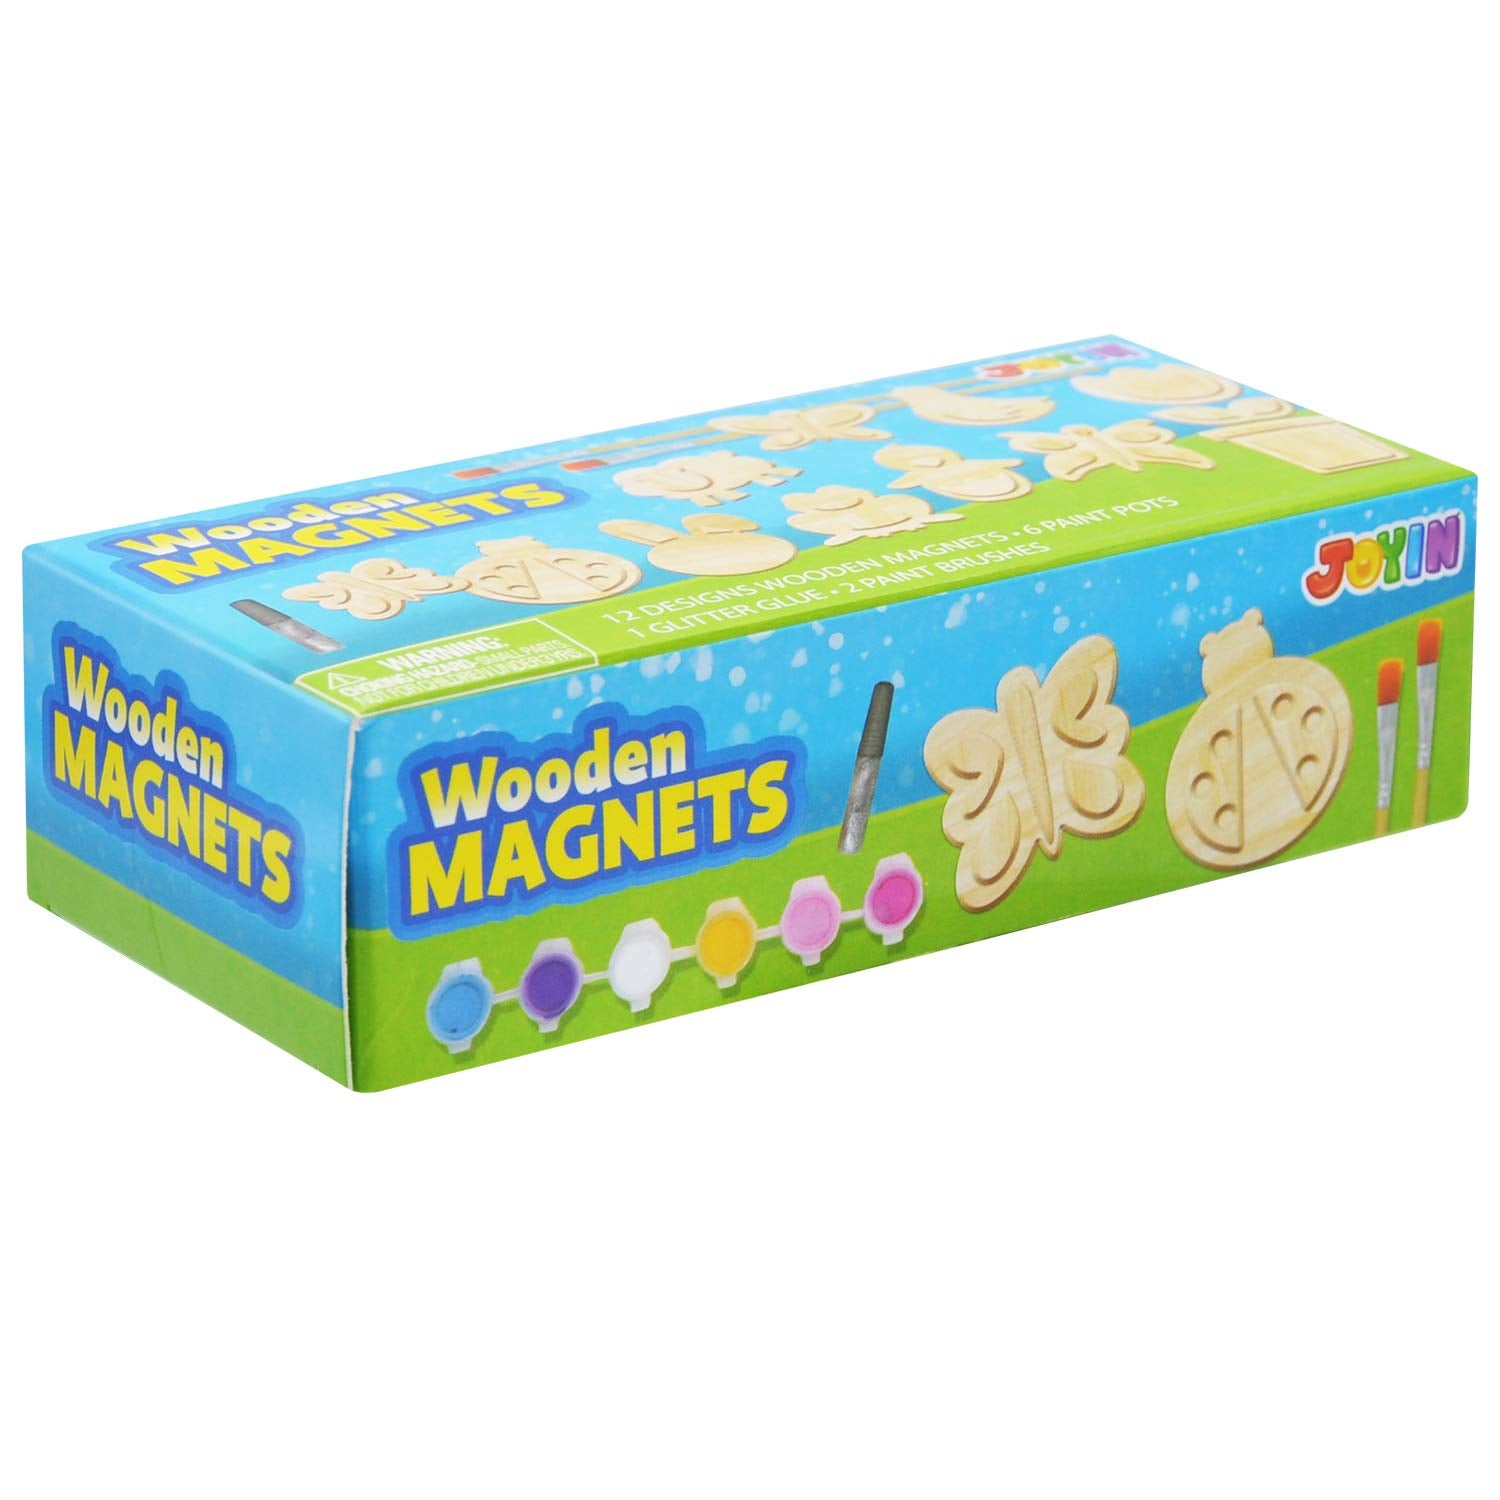 12 Wooden Magnet Creativity Arts & Crafts Painting Kit